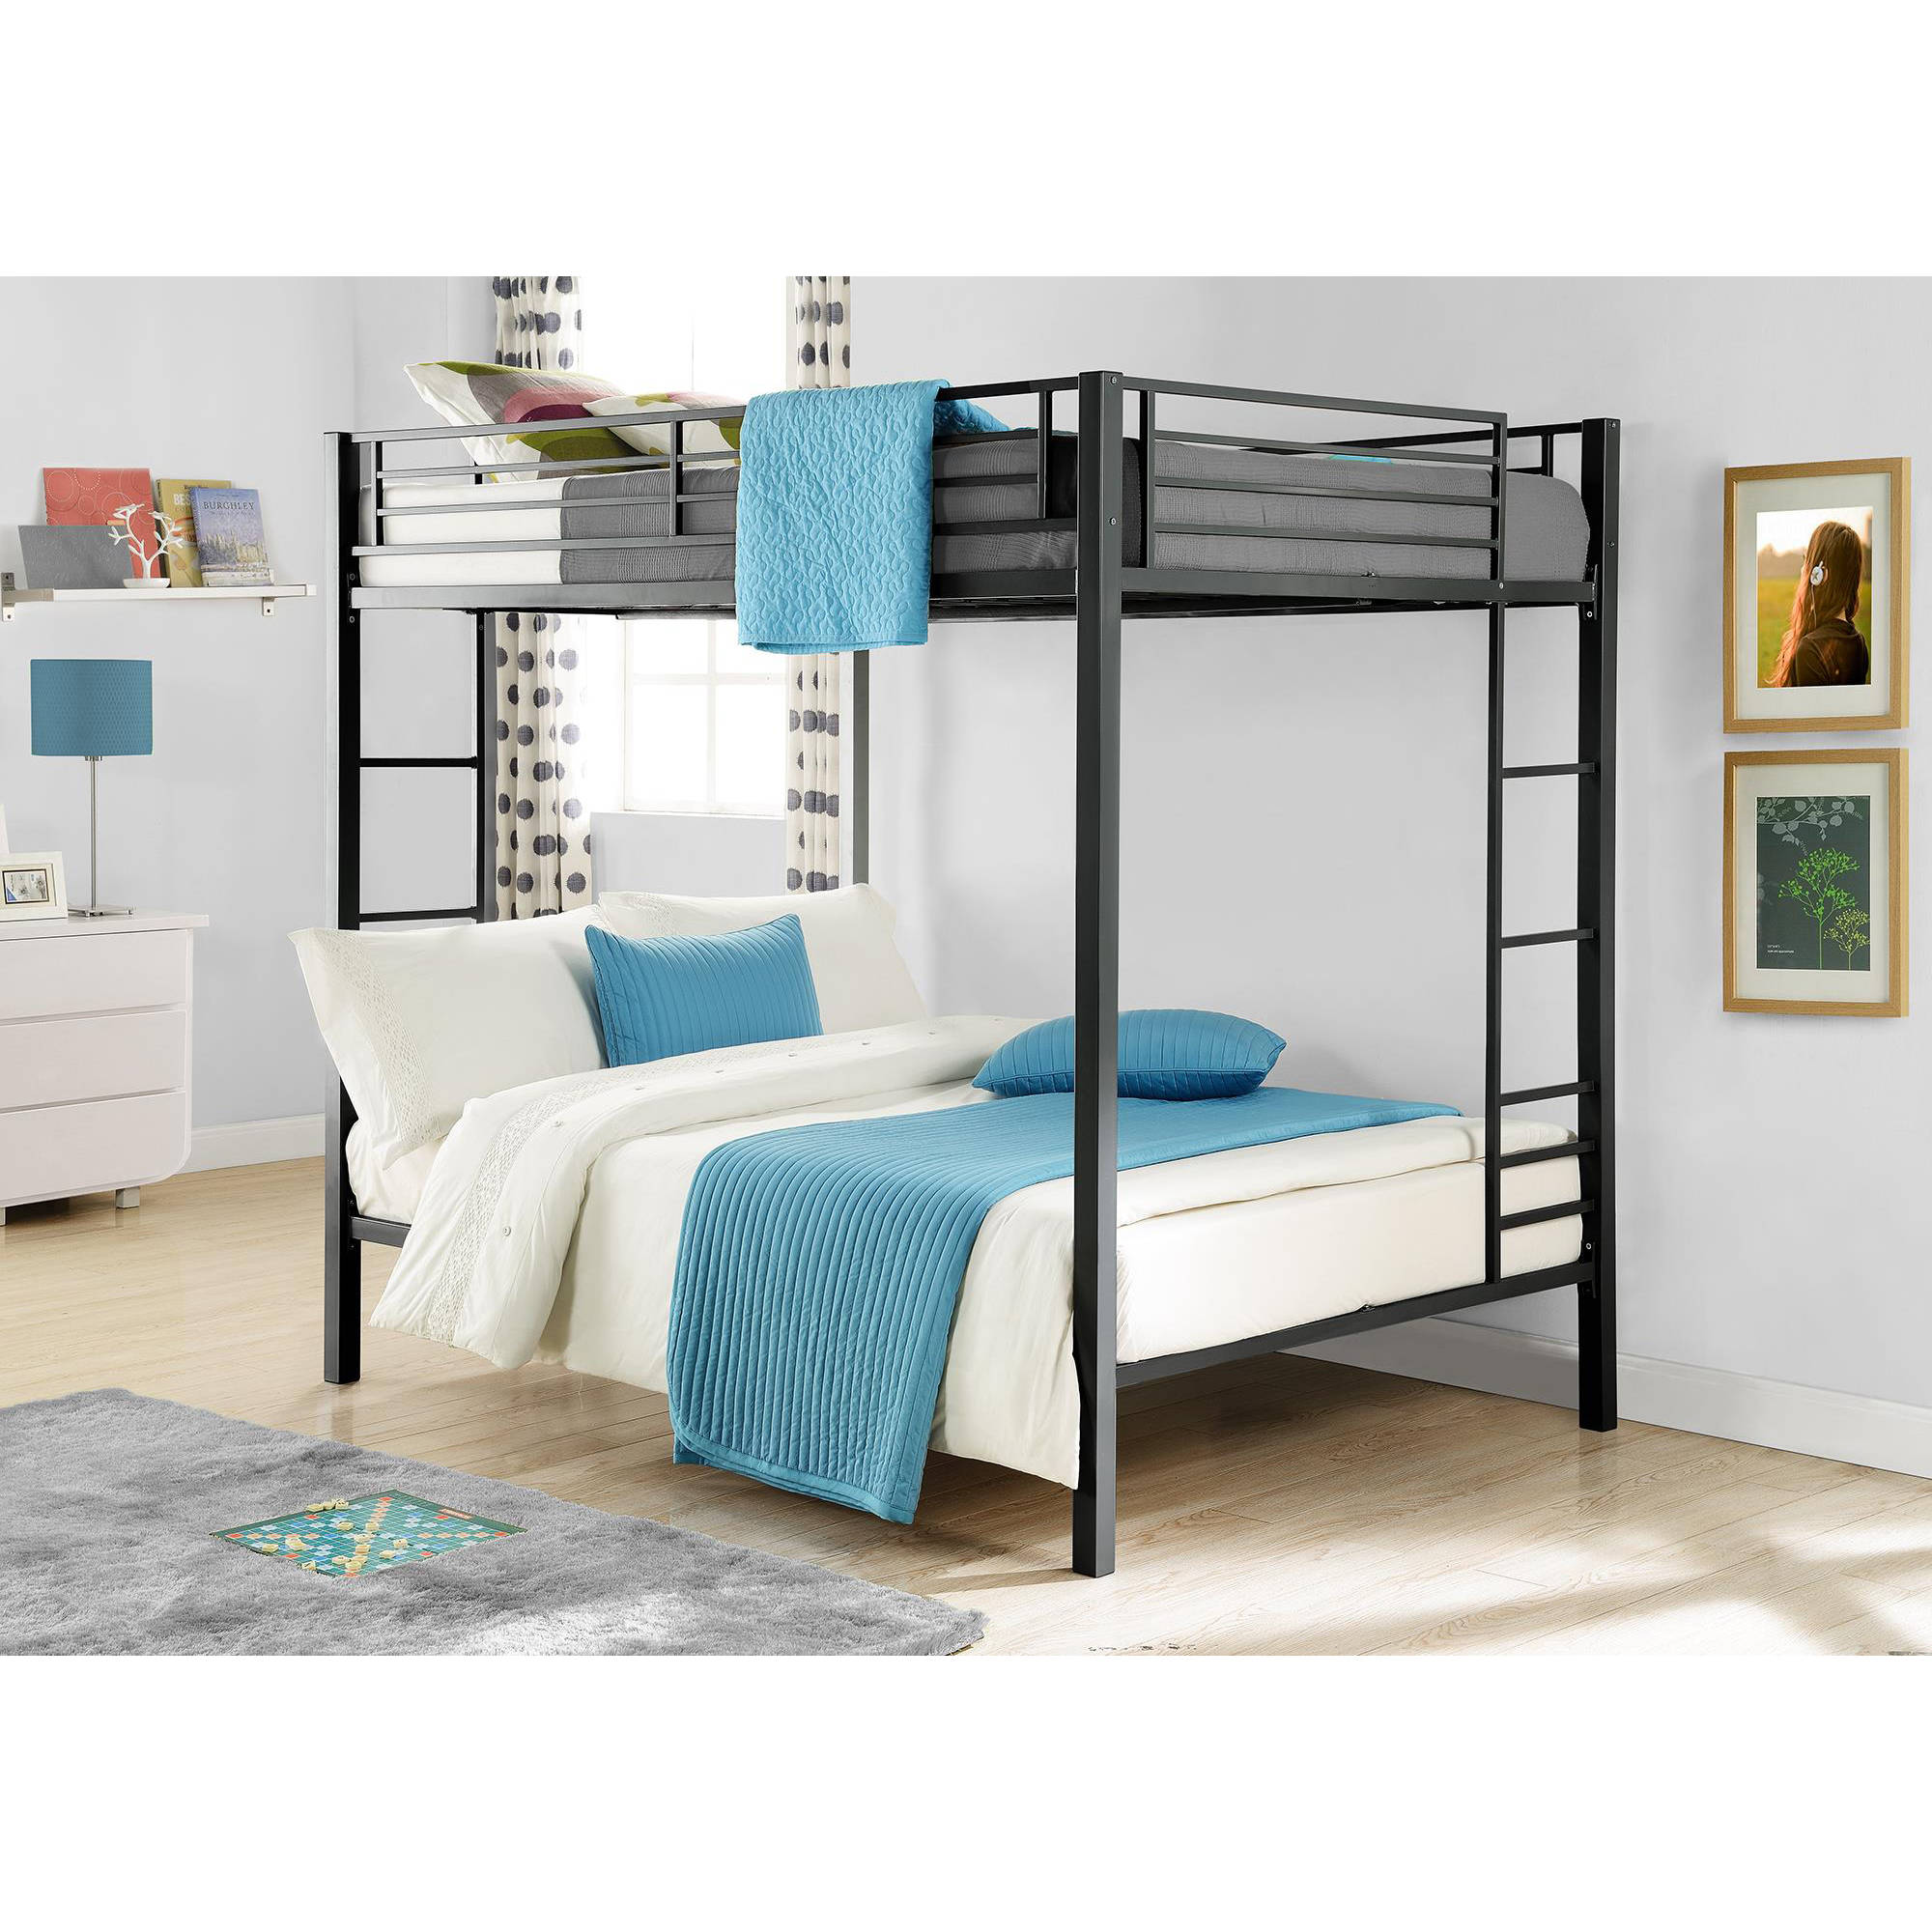 Full Double Bed Details About Bunk Beds On Sale Kids Full Size Over Double Bedroom Loft Furniture Space Saver